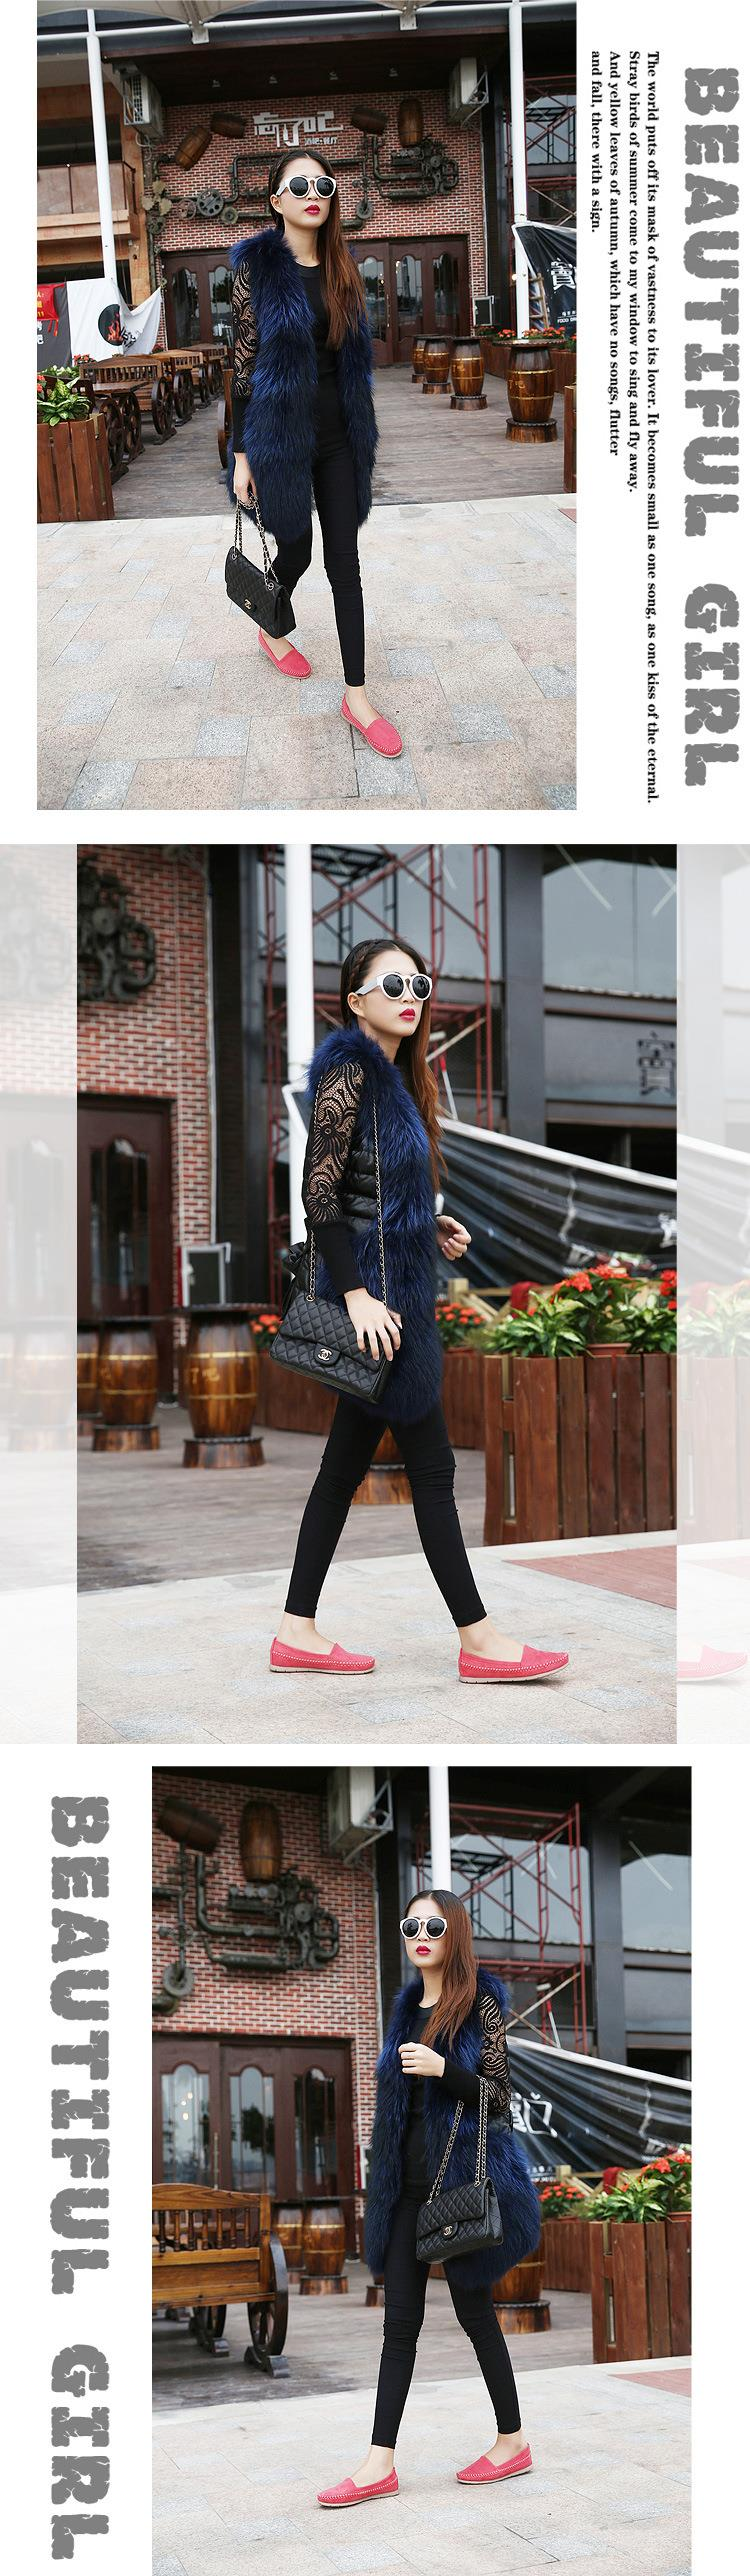 New 2016 Women PU Leather Shoes Women Flats Fashion Casual Women Shoes Slip On Women Loafer Flats Shoes